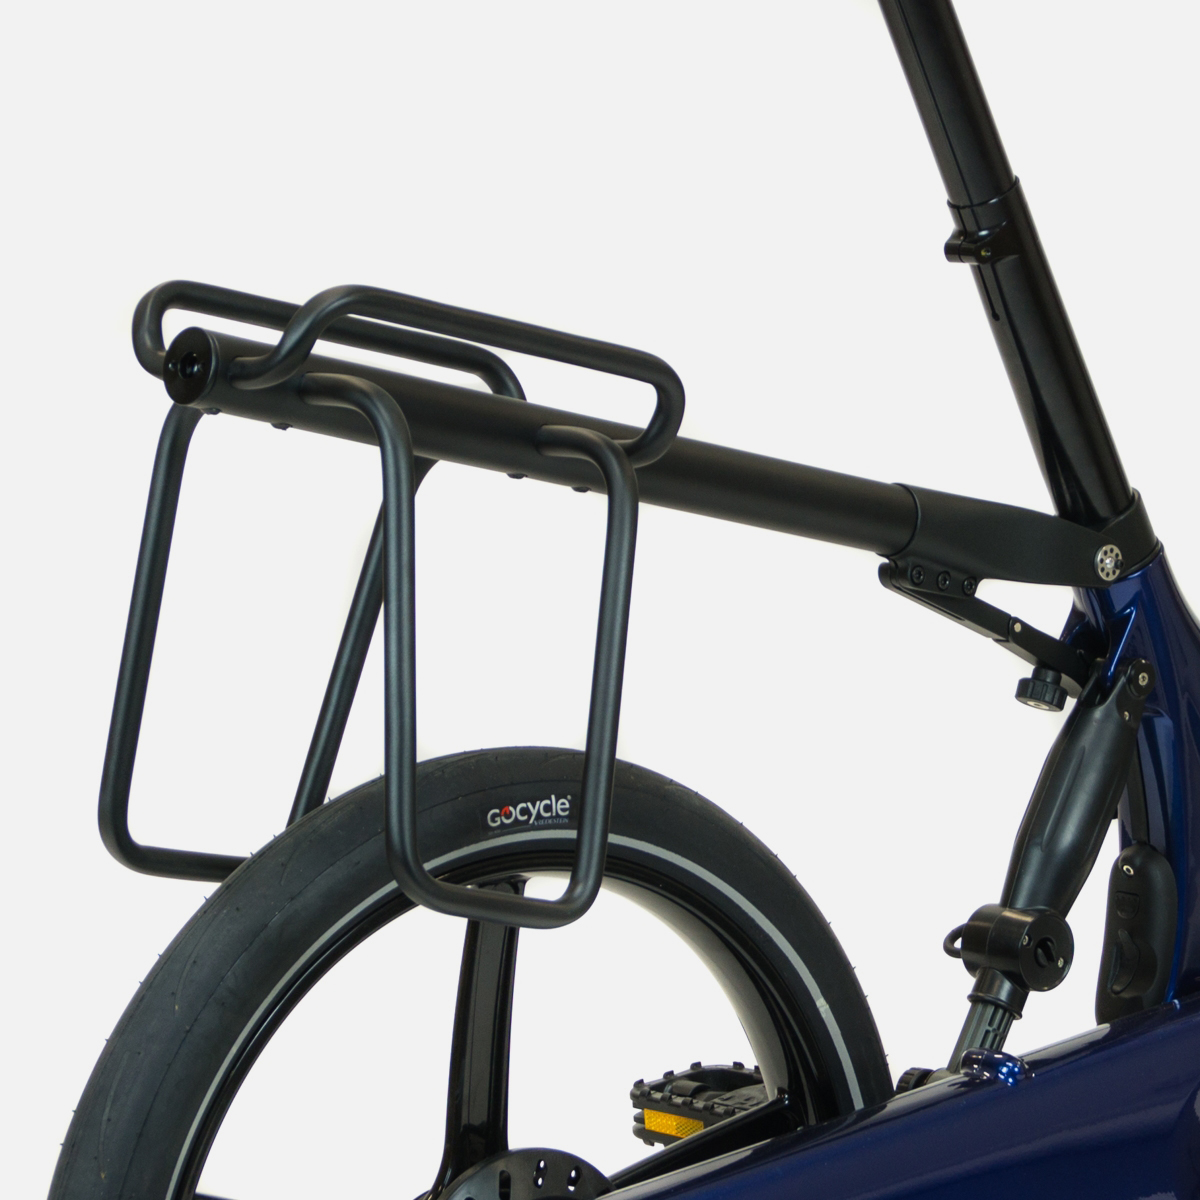 GS/G3 Rear Luggage Rack